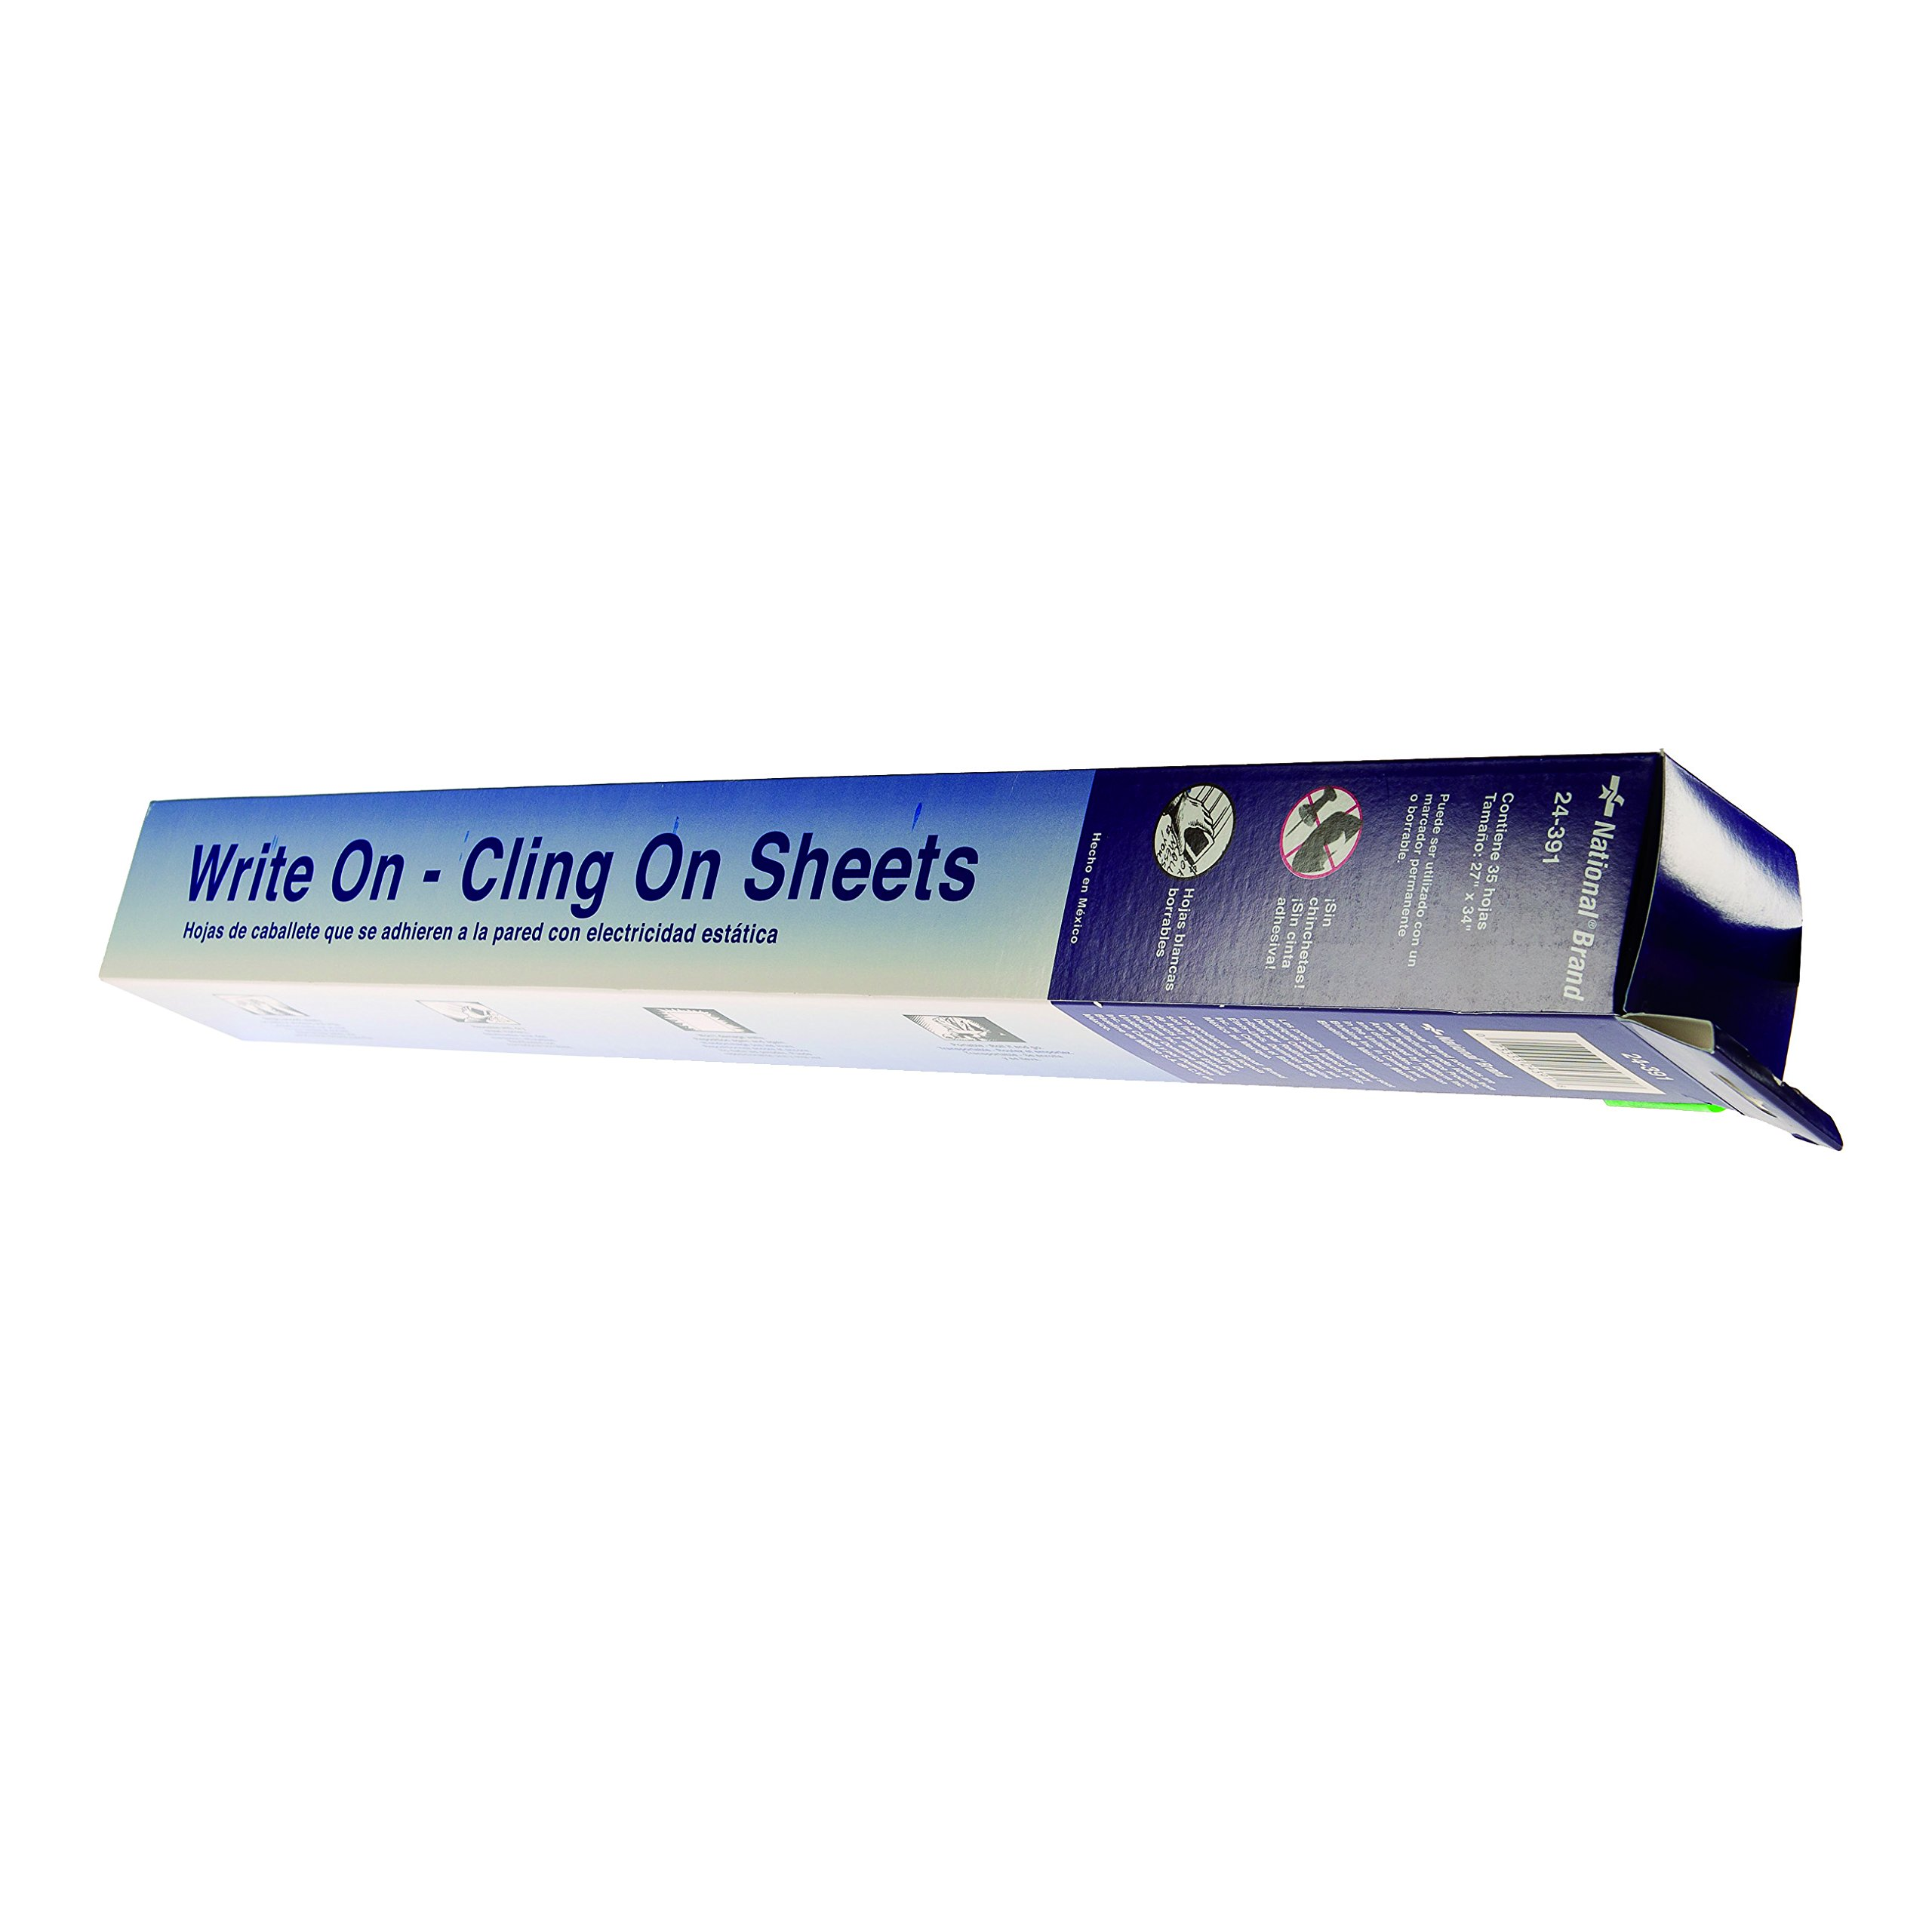 National Brand Write On - Cling On Static Easel Pad, Plain Poly Sheets, 27 x 34 Inches, 35 Sheets (24391)